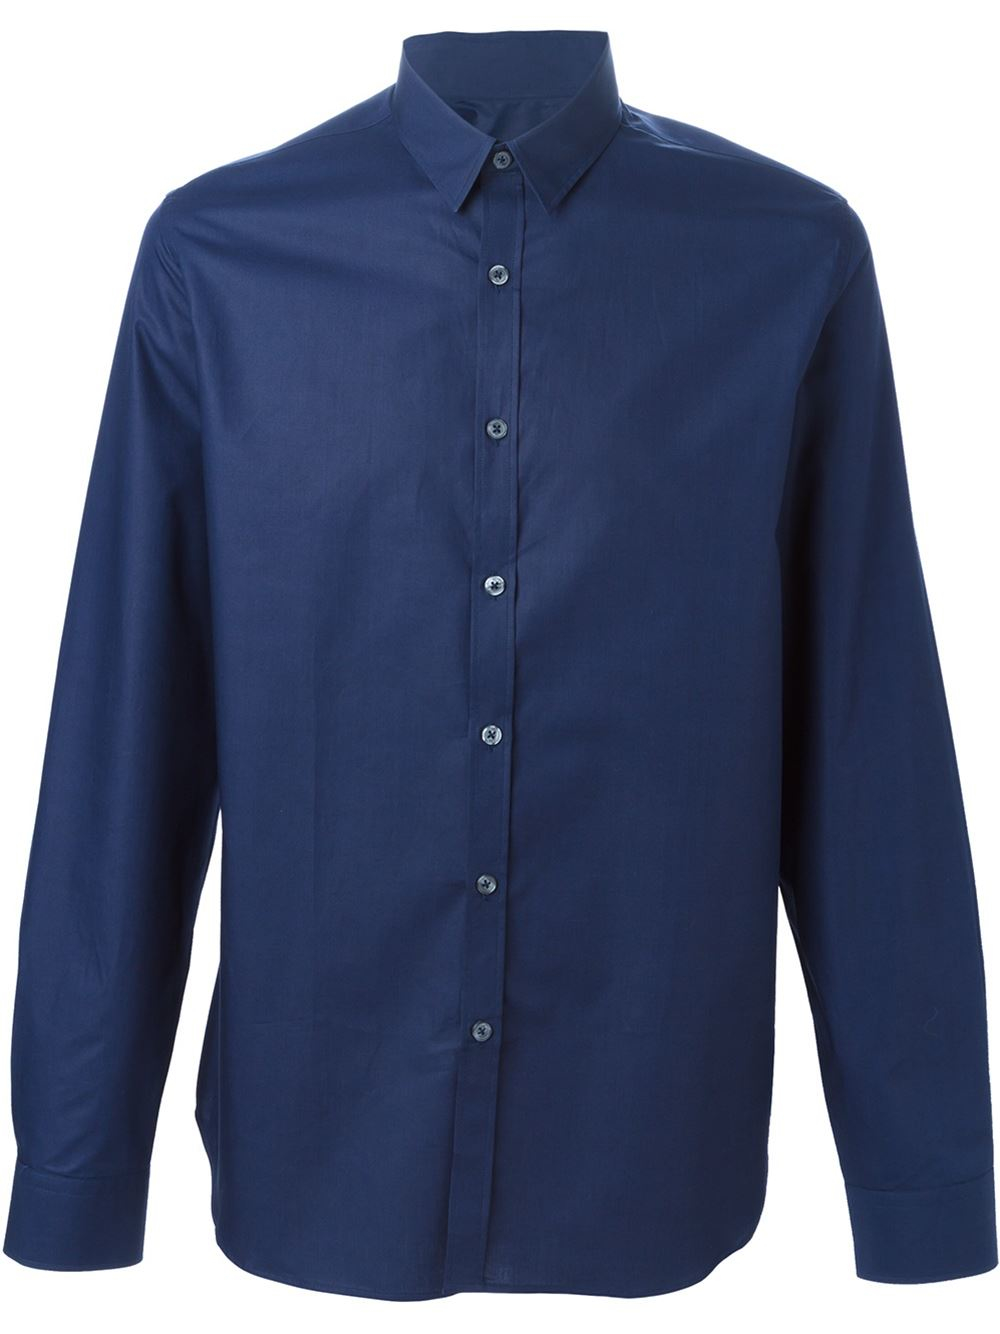 ps by paul smith classic shirt in blue for lyst